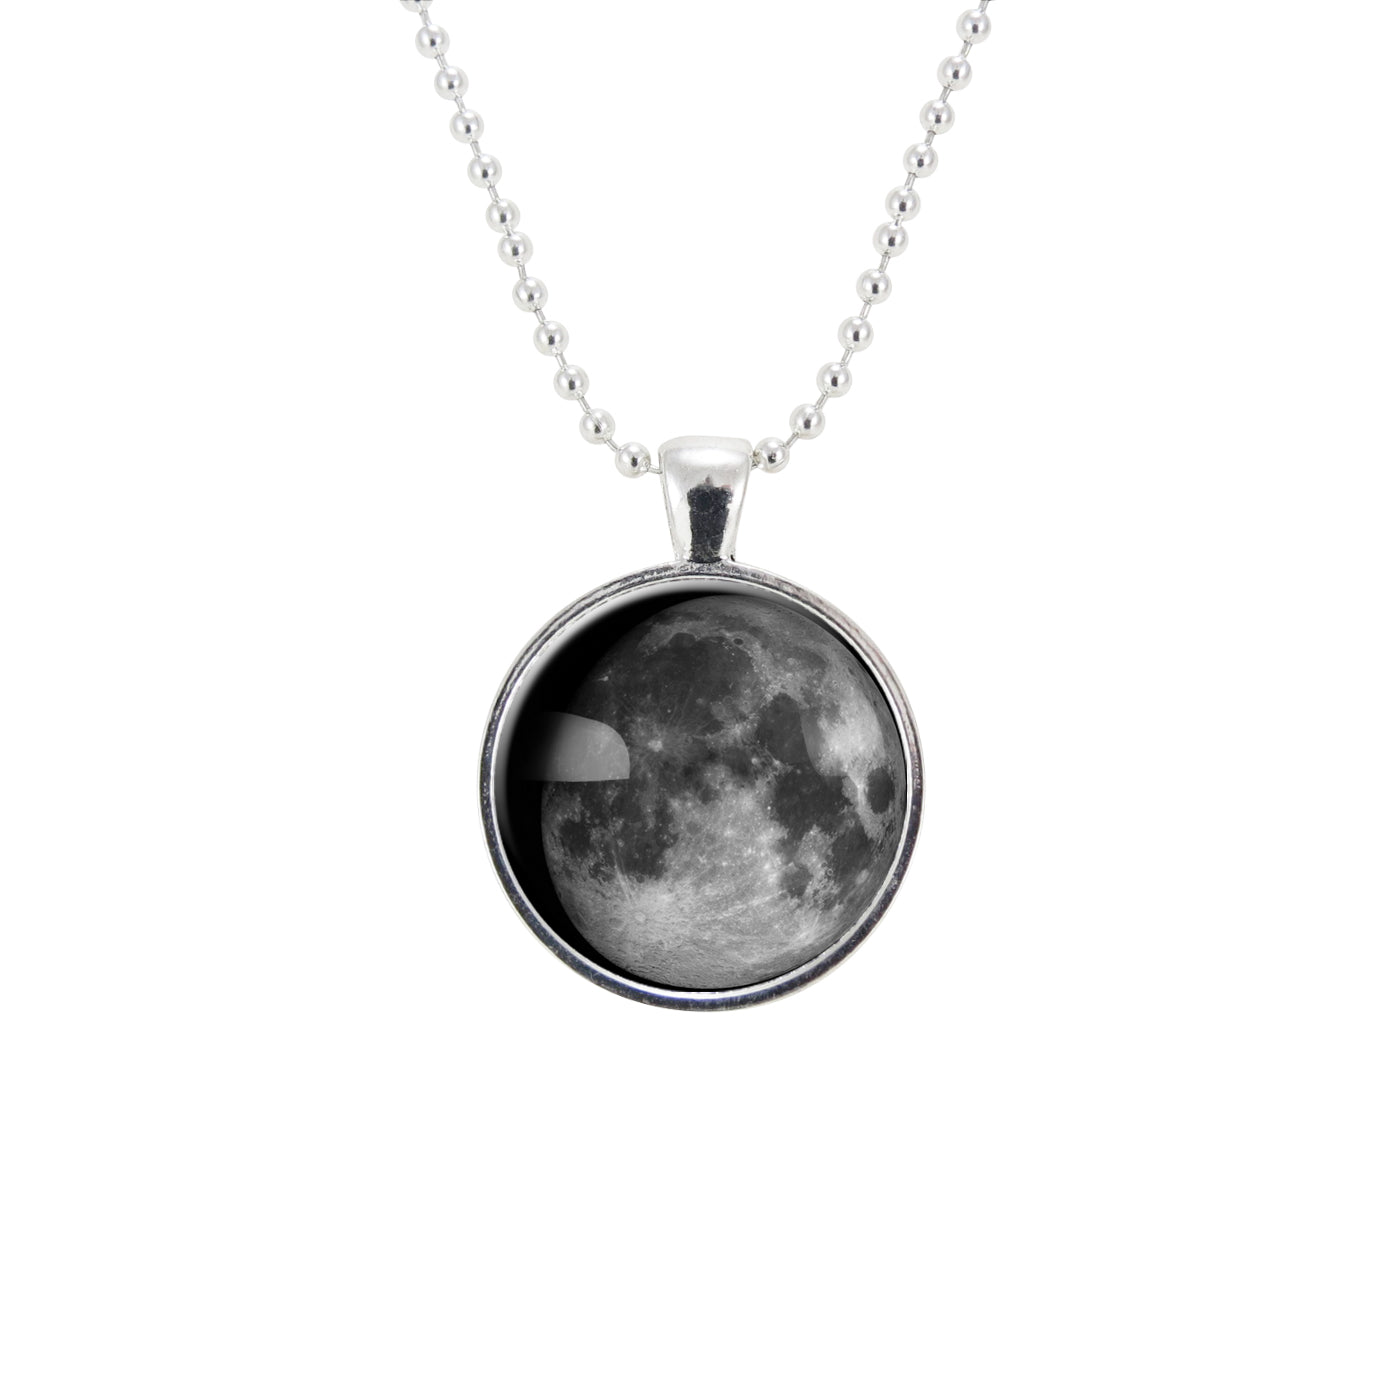 custom necklace personalized special customized birth pendant products date jewelry phases moon